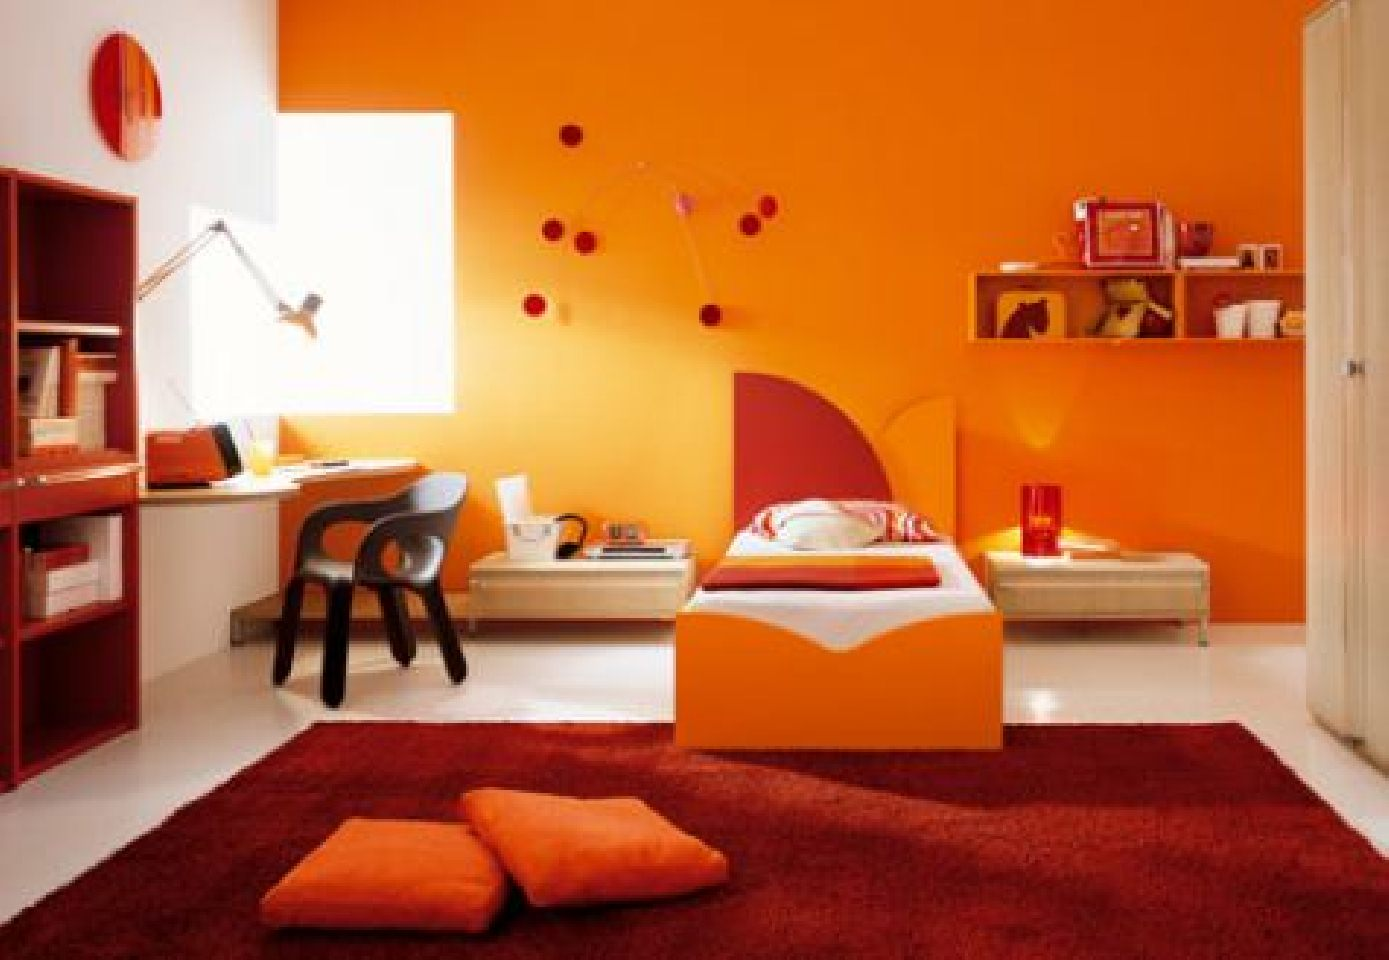 creative bedroom energetic orange home decor image 4 of 10 - Home Decor Furniture